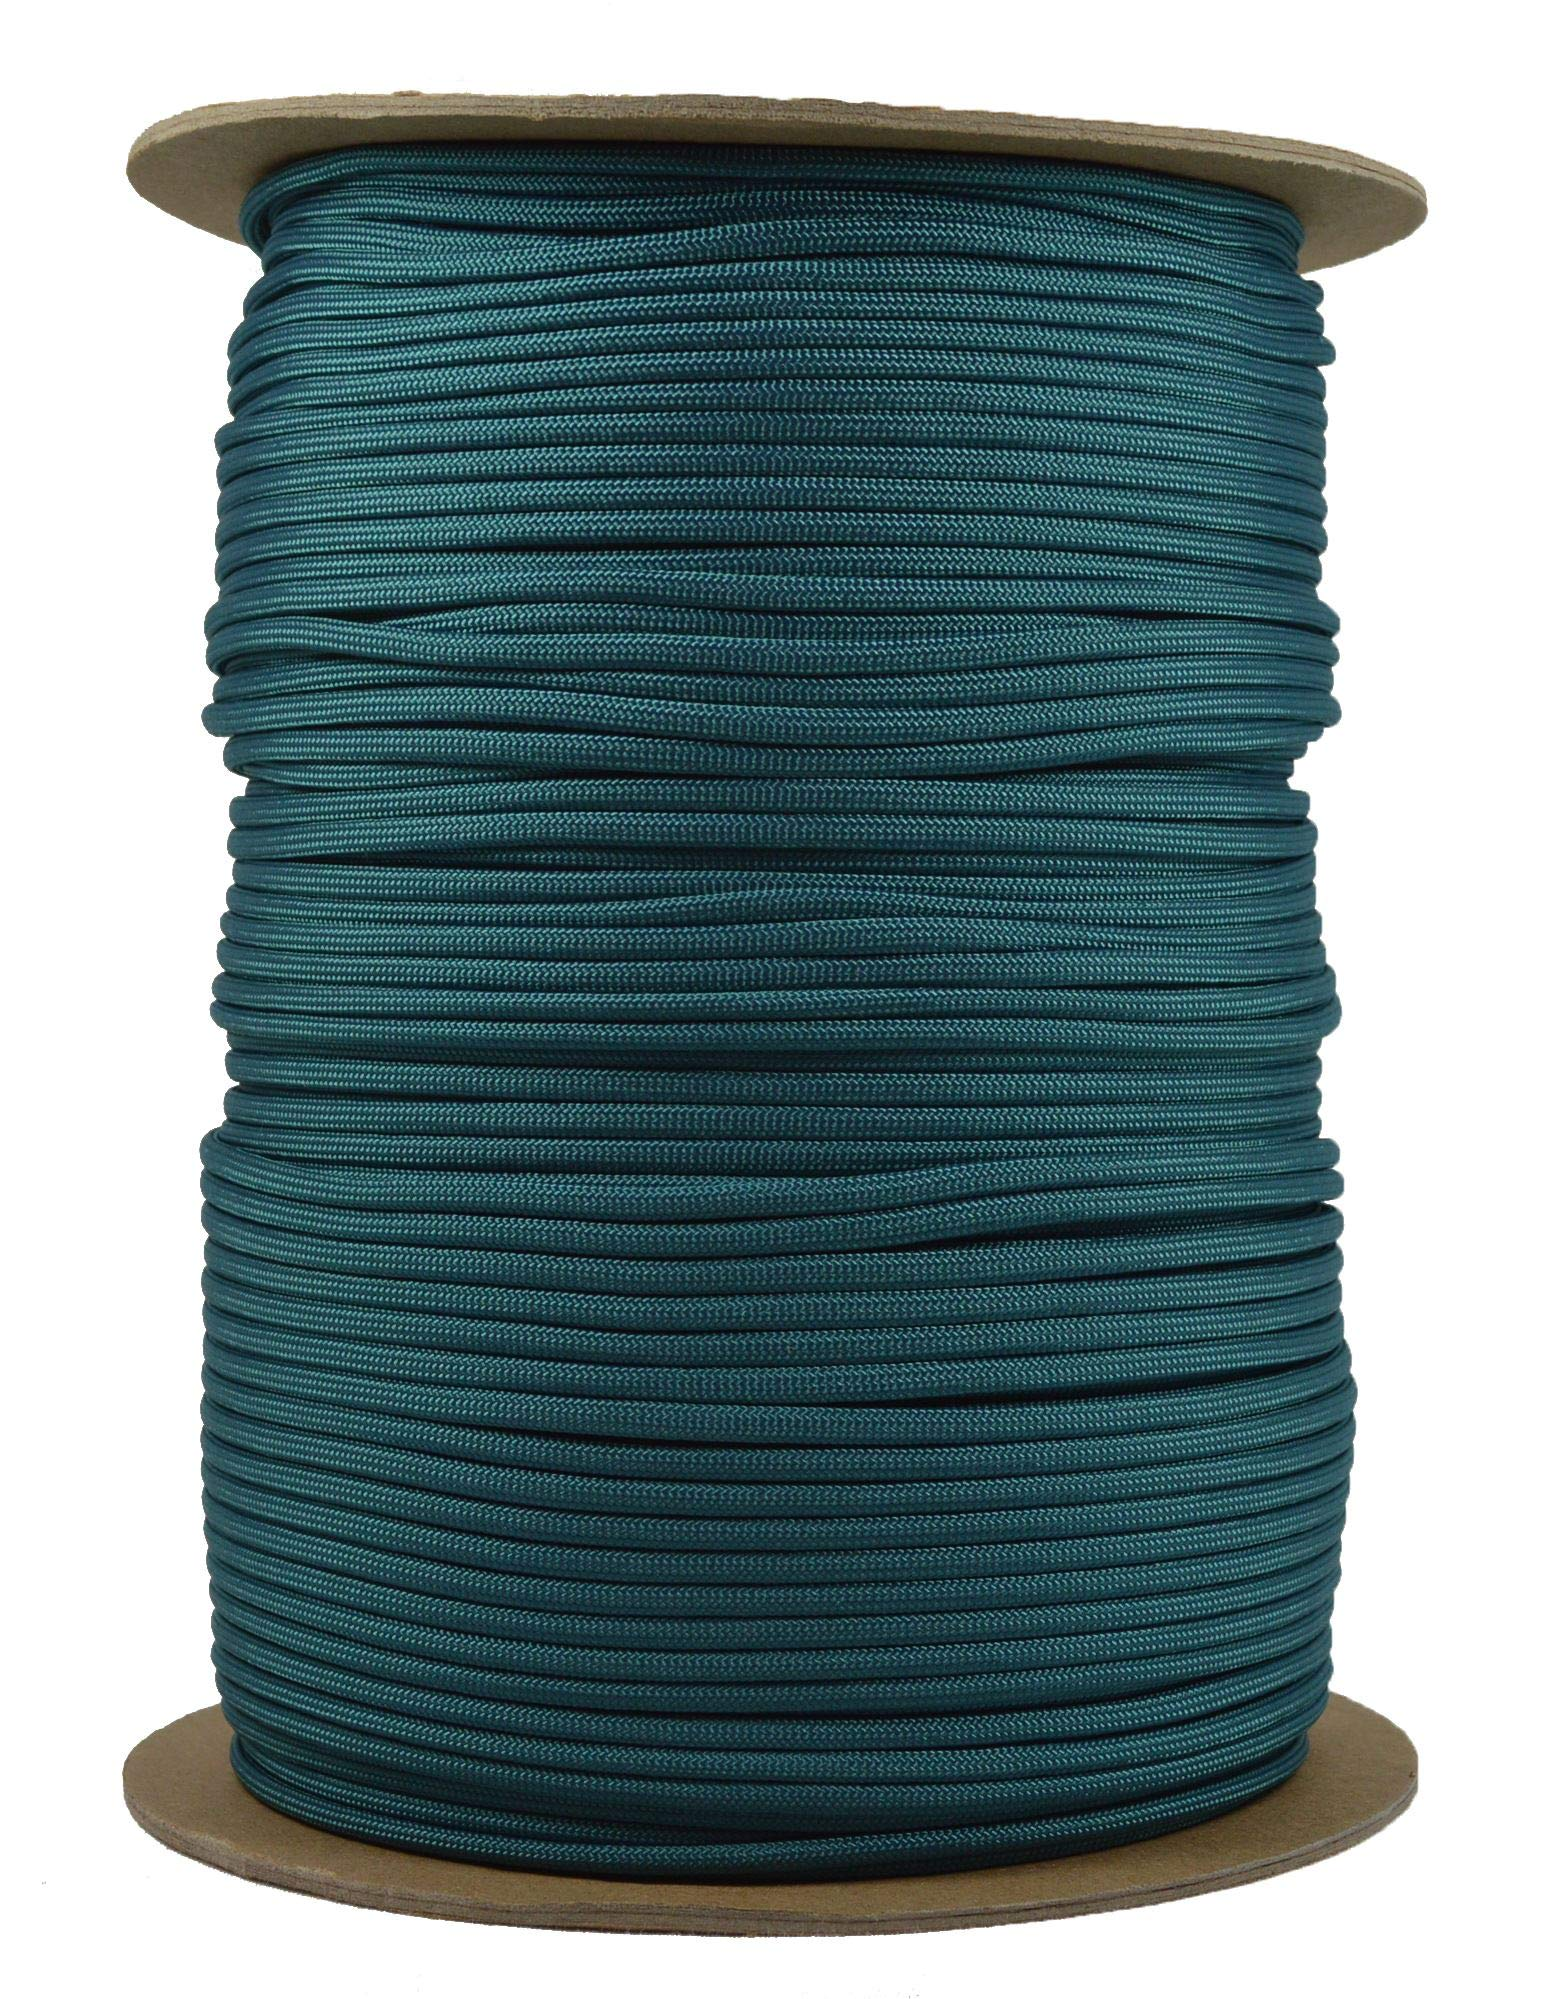 TealMil-Spec Commercial Grade 550lb Type III Nylon Paracord - 1000 Foot Spool by Bored Paracord